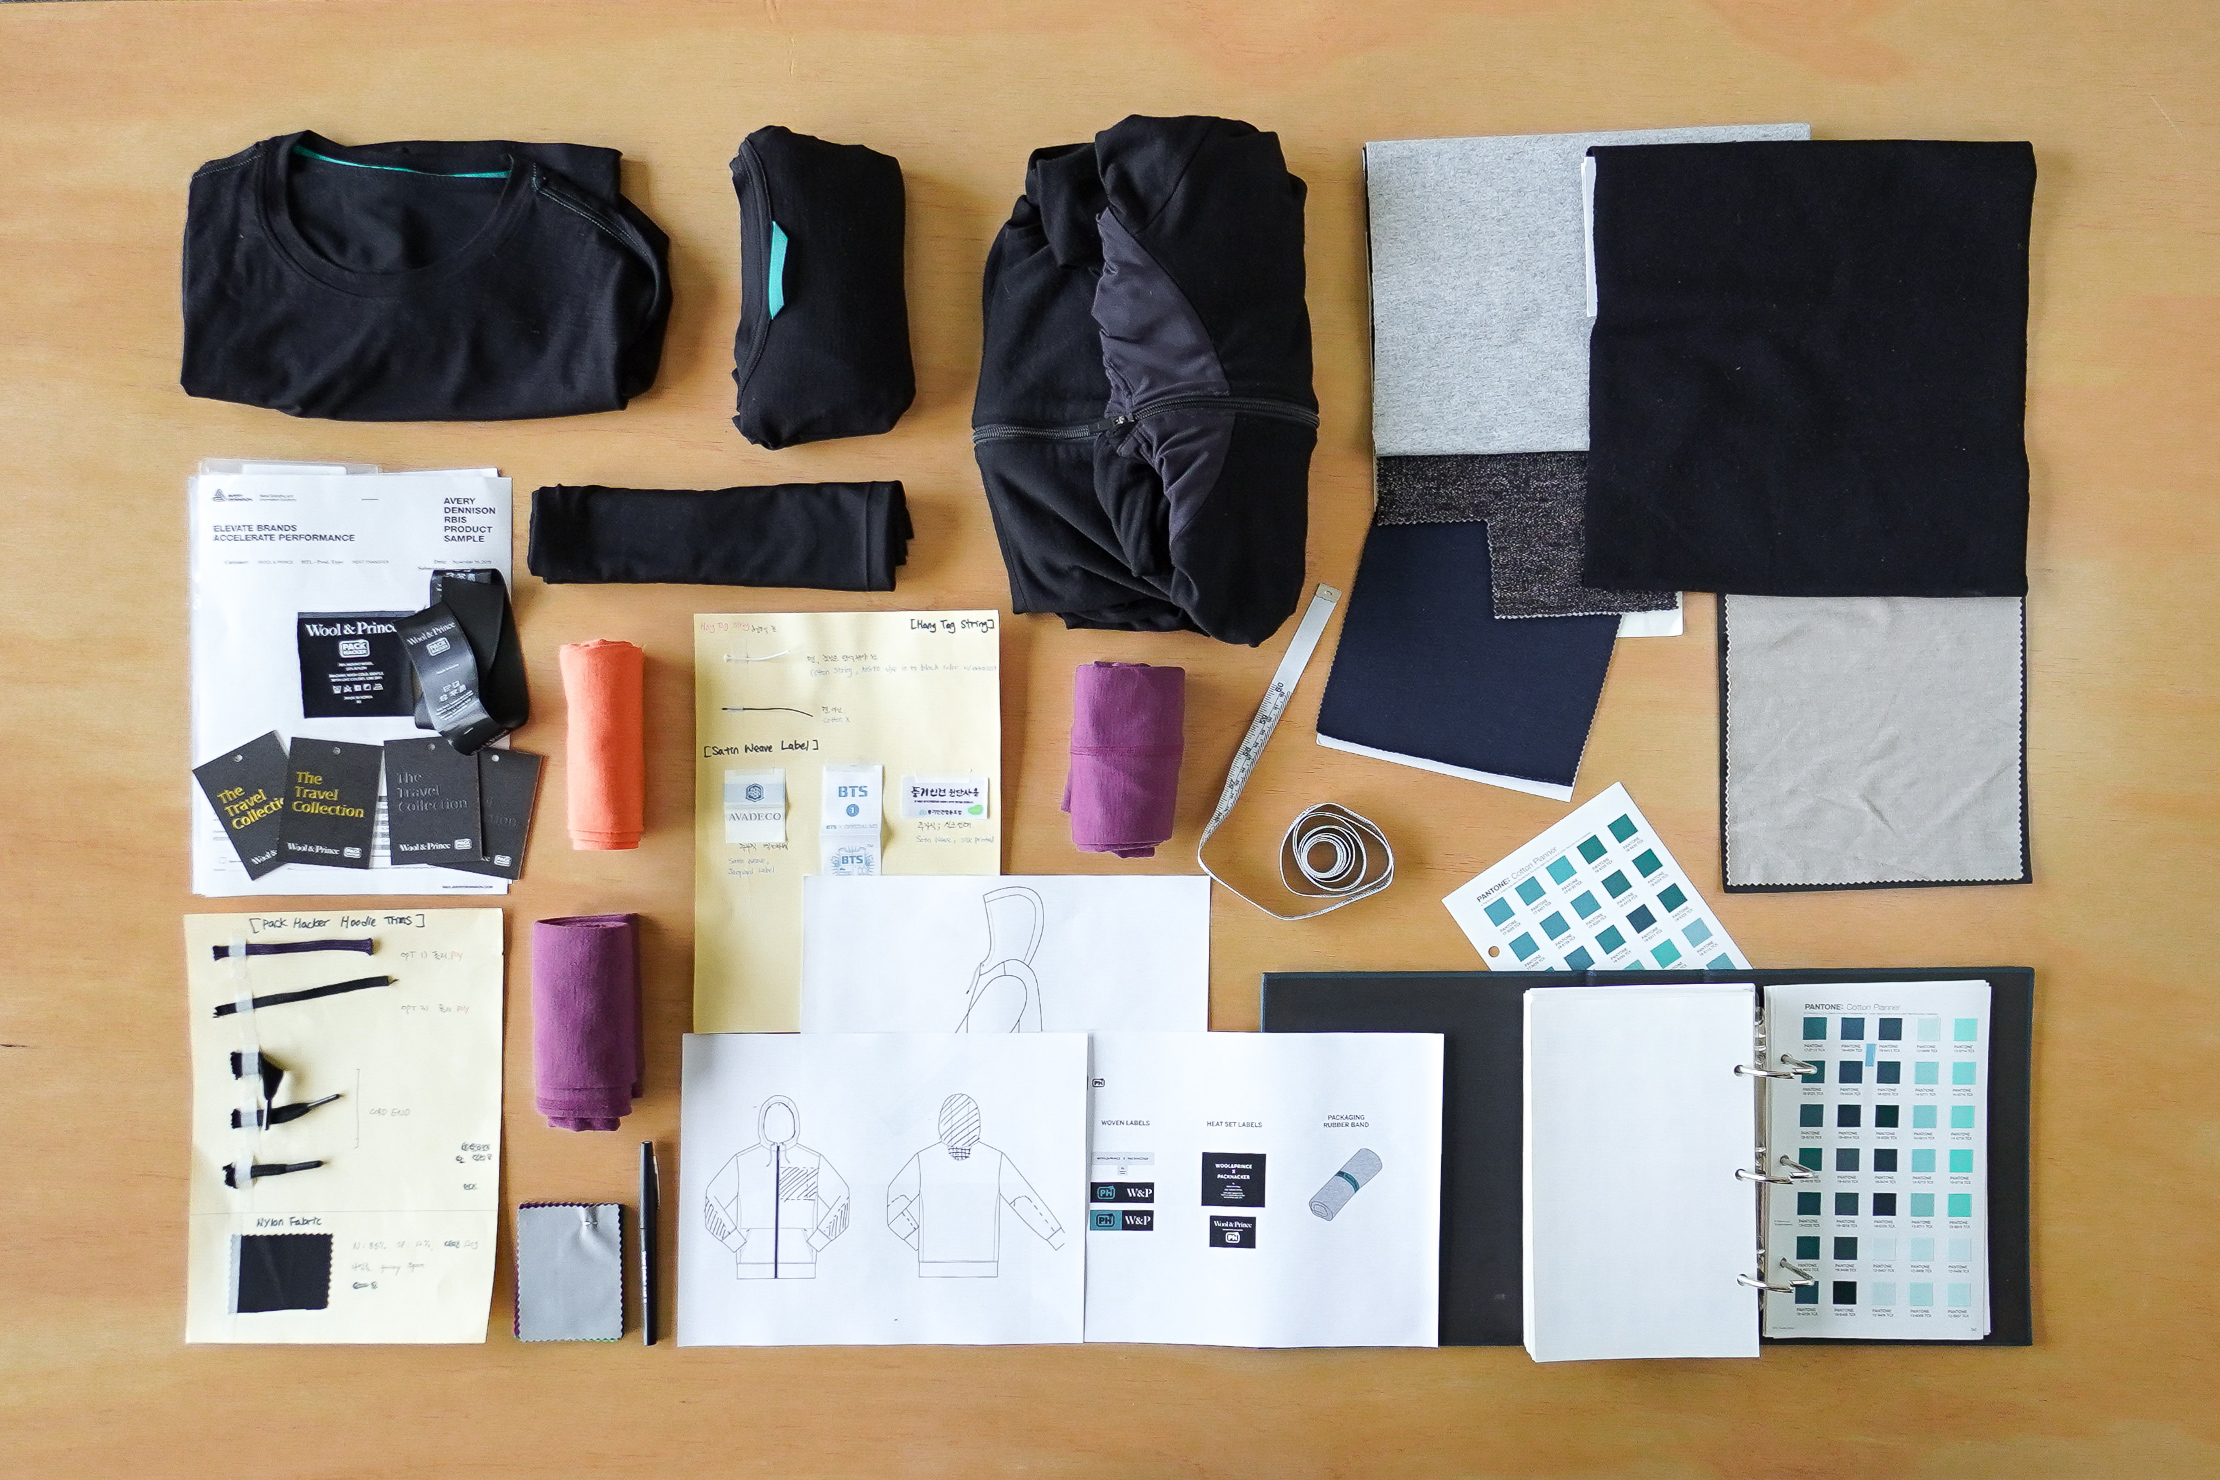 Materials and Designs at Wool & Prince HQ in Portland